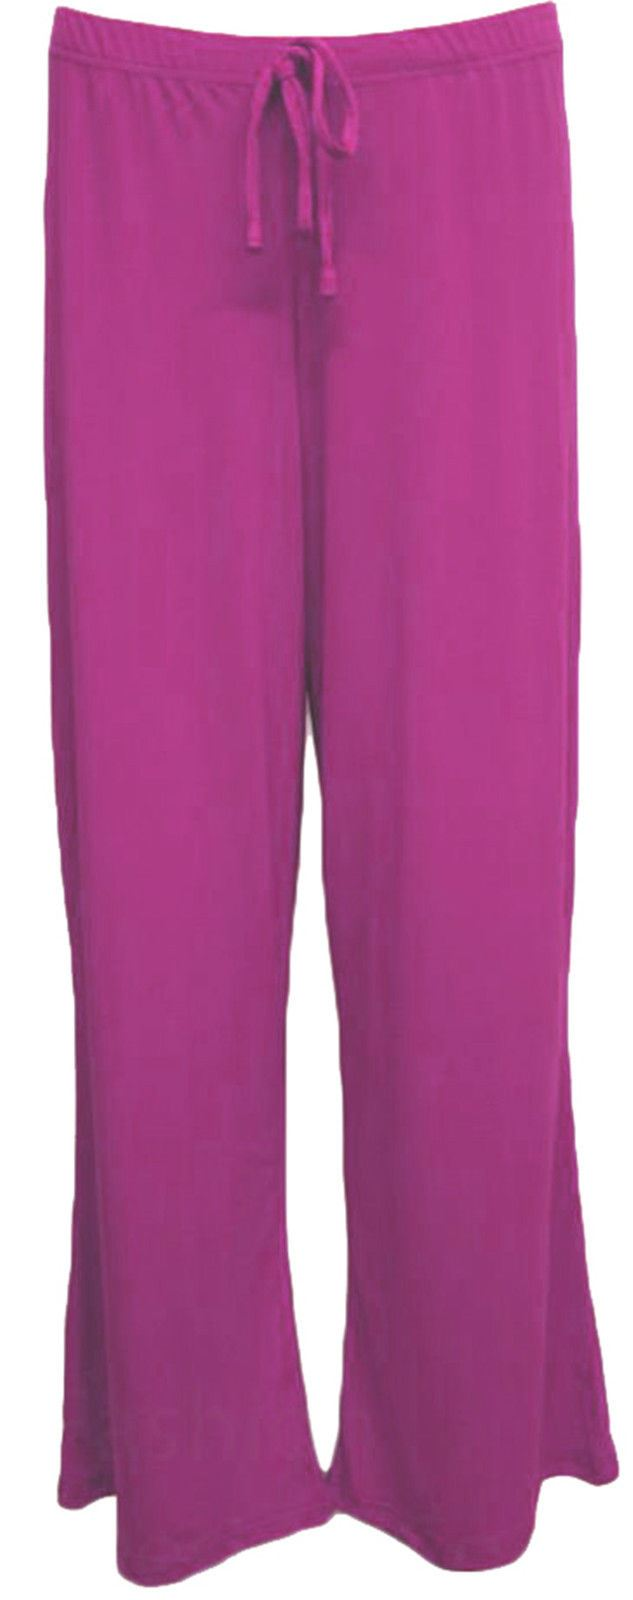 NEW-WOMENS-WIDE-LEG-PAINTS-BAGGY-FLARED-LADIES-PLUS-SIZE-PALAZZO-TROUSERS-12-28